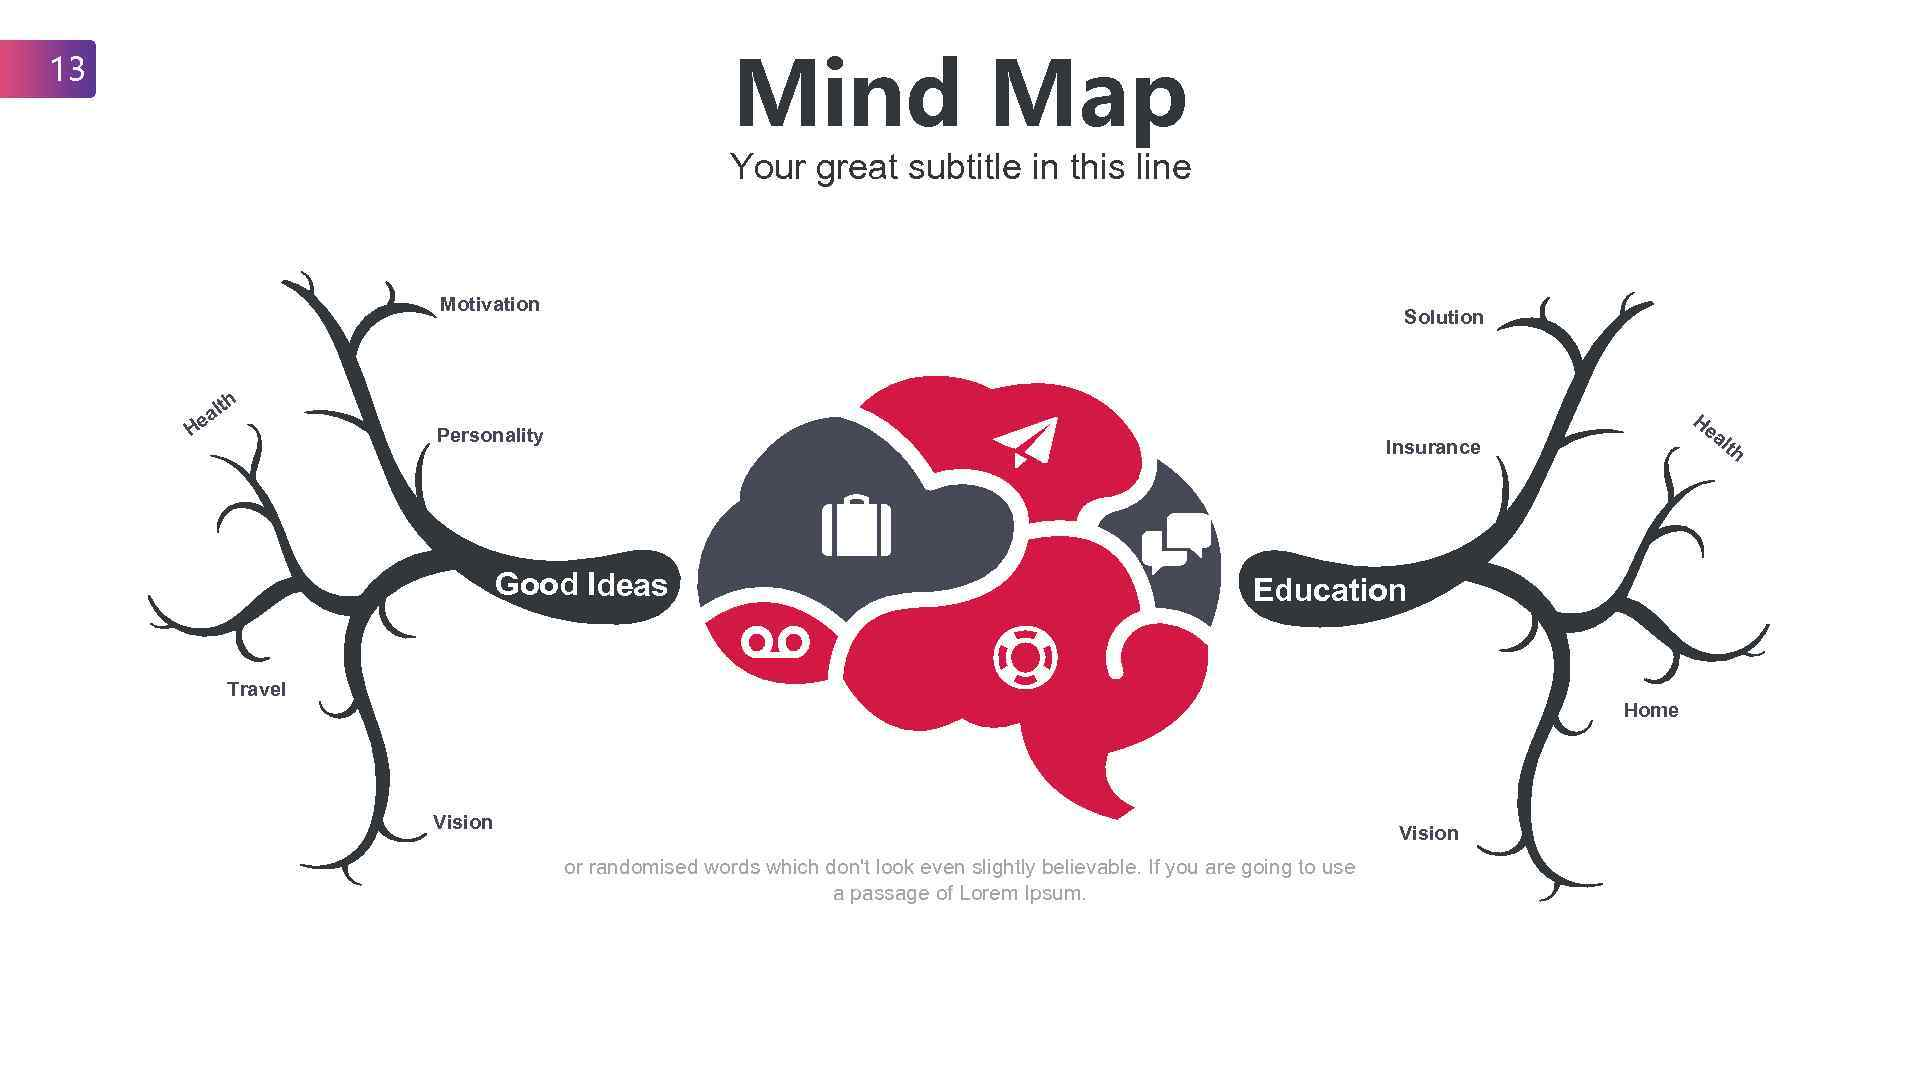 Mind Map 13 Your great subtitle in this line Motivation lth a He Solution